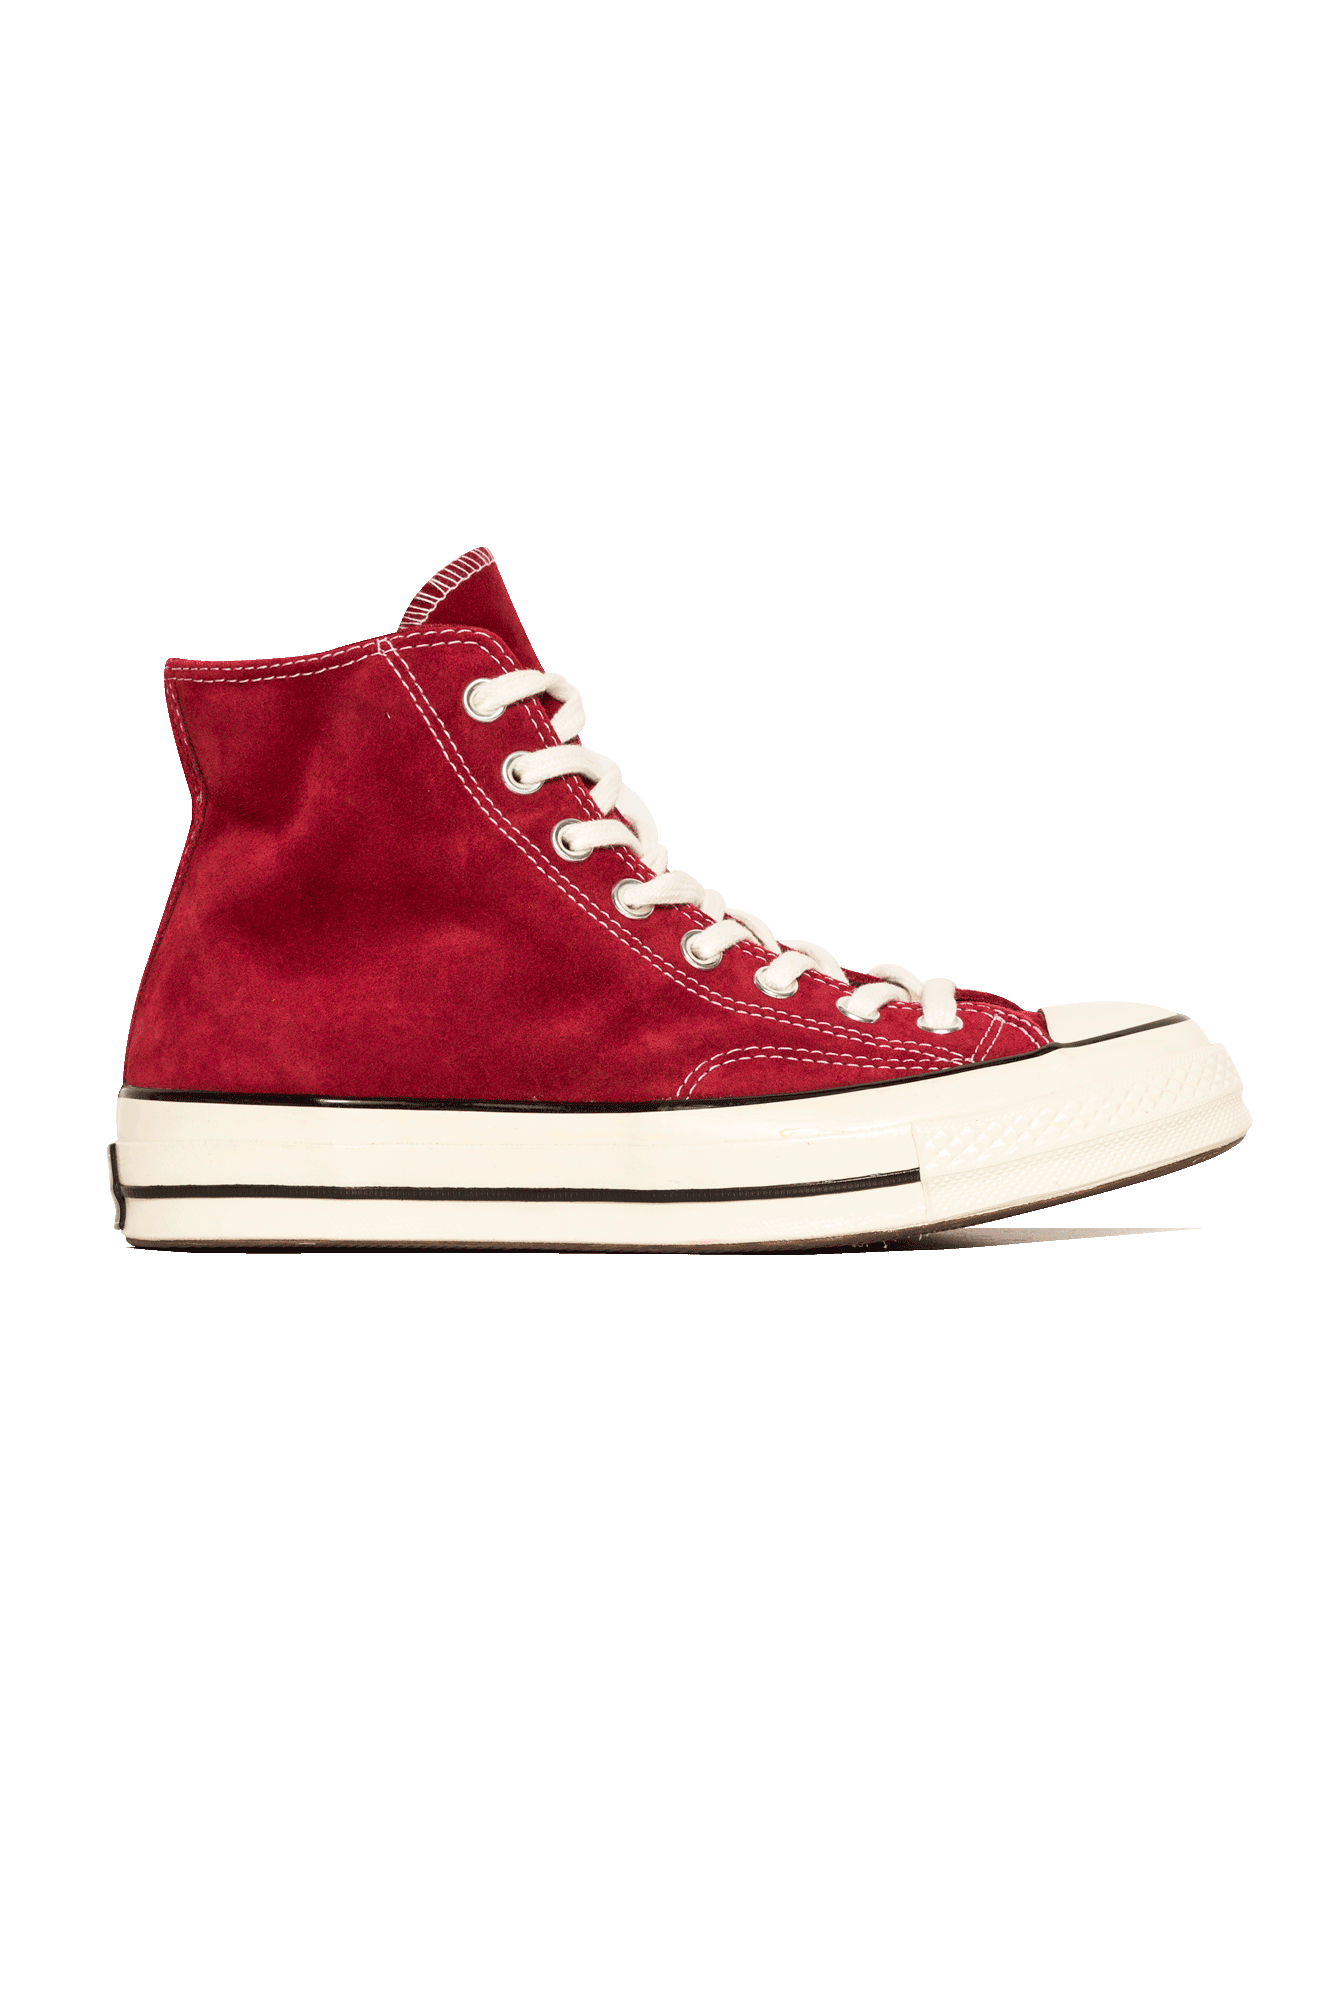 Converse Sneakers Chuck Taylor Premium Hi 1970'S Suede Rosso 149441C#000#C0012#9,5 - One Block Down